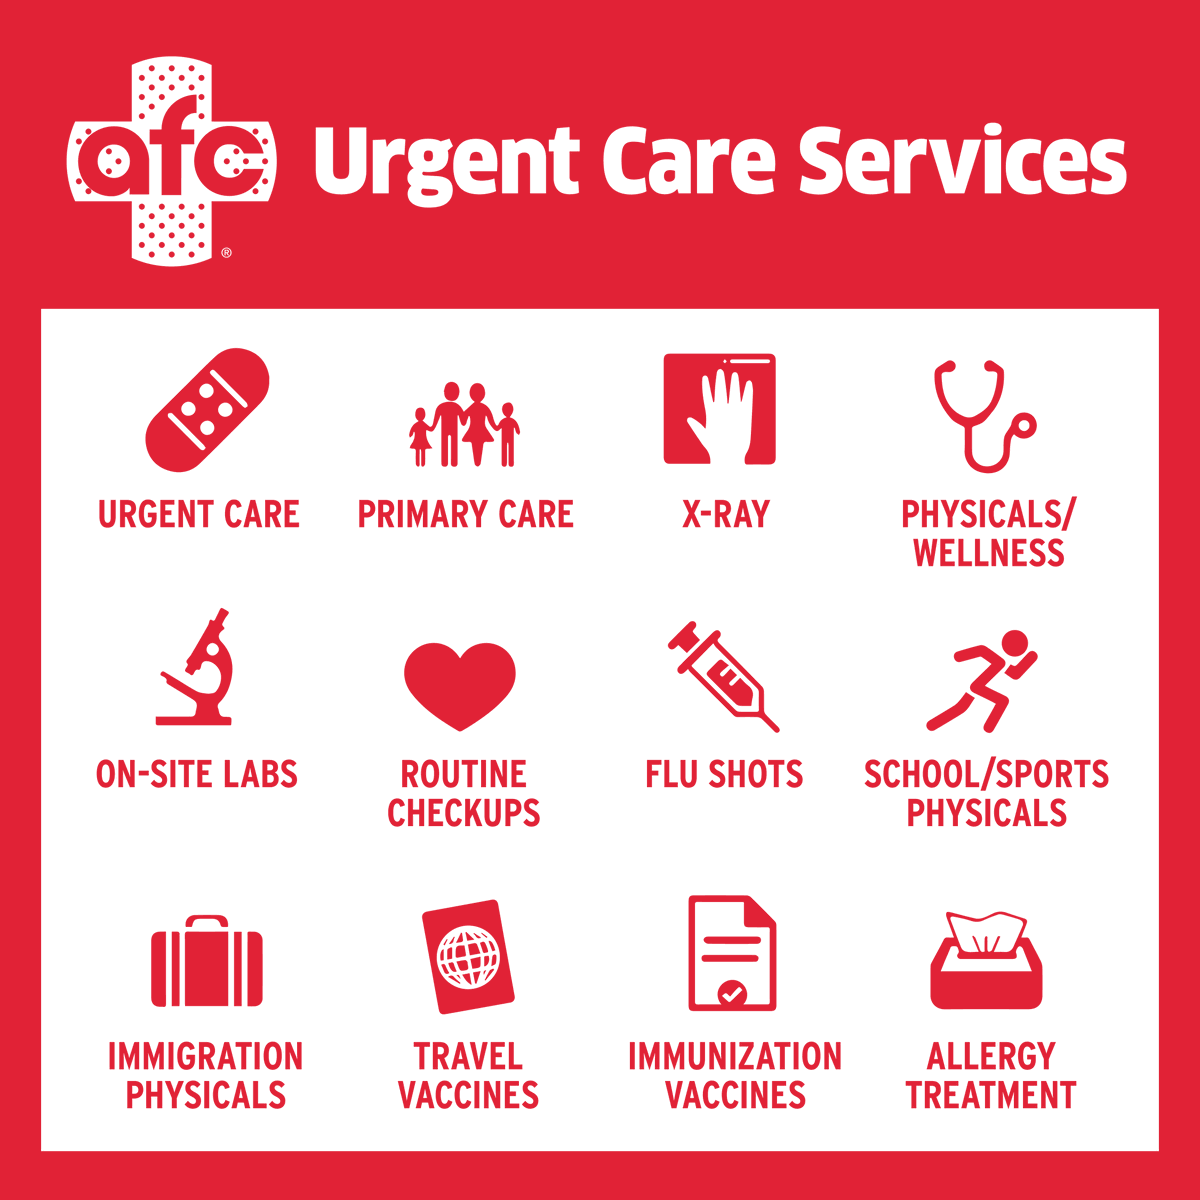 American Family Care On Twitter At Afc We Do Not Require Appointments Our Clinics Are Here To Provide The Immediate Medical Care You Need At A Fraction Of The Cost You Will